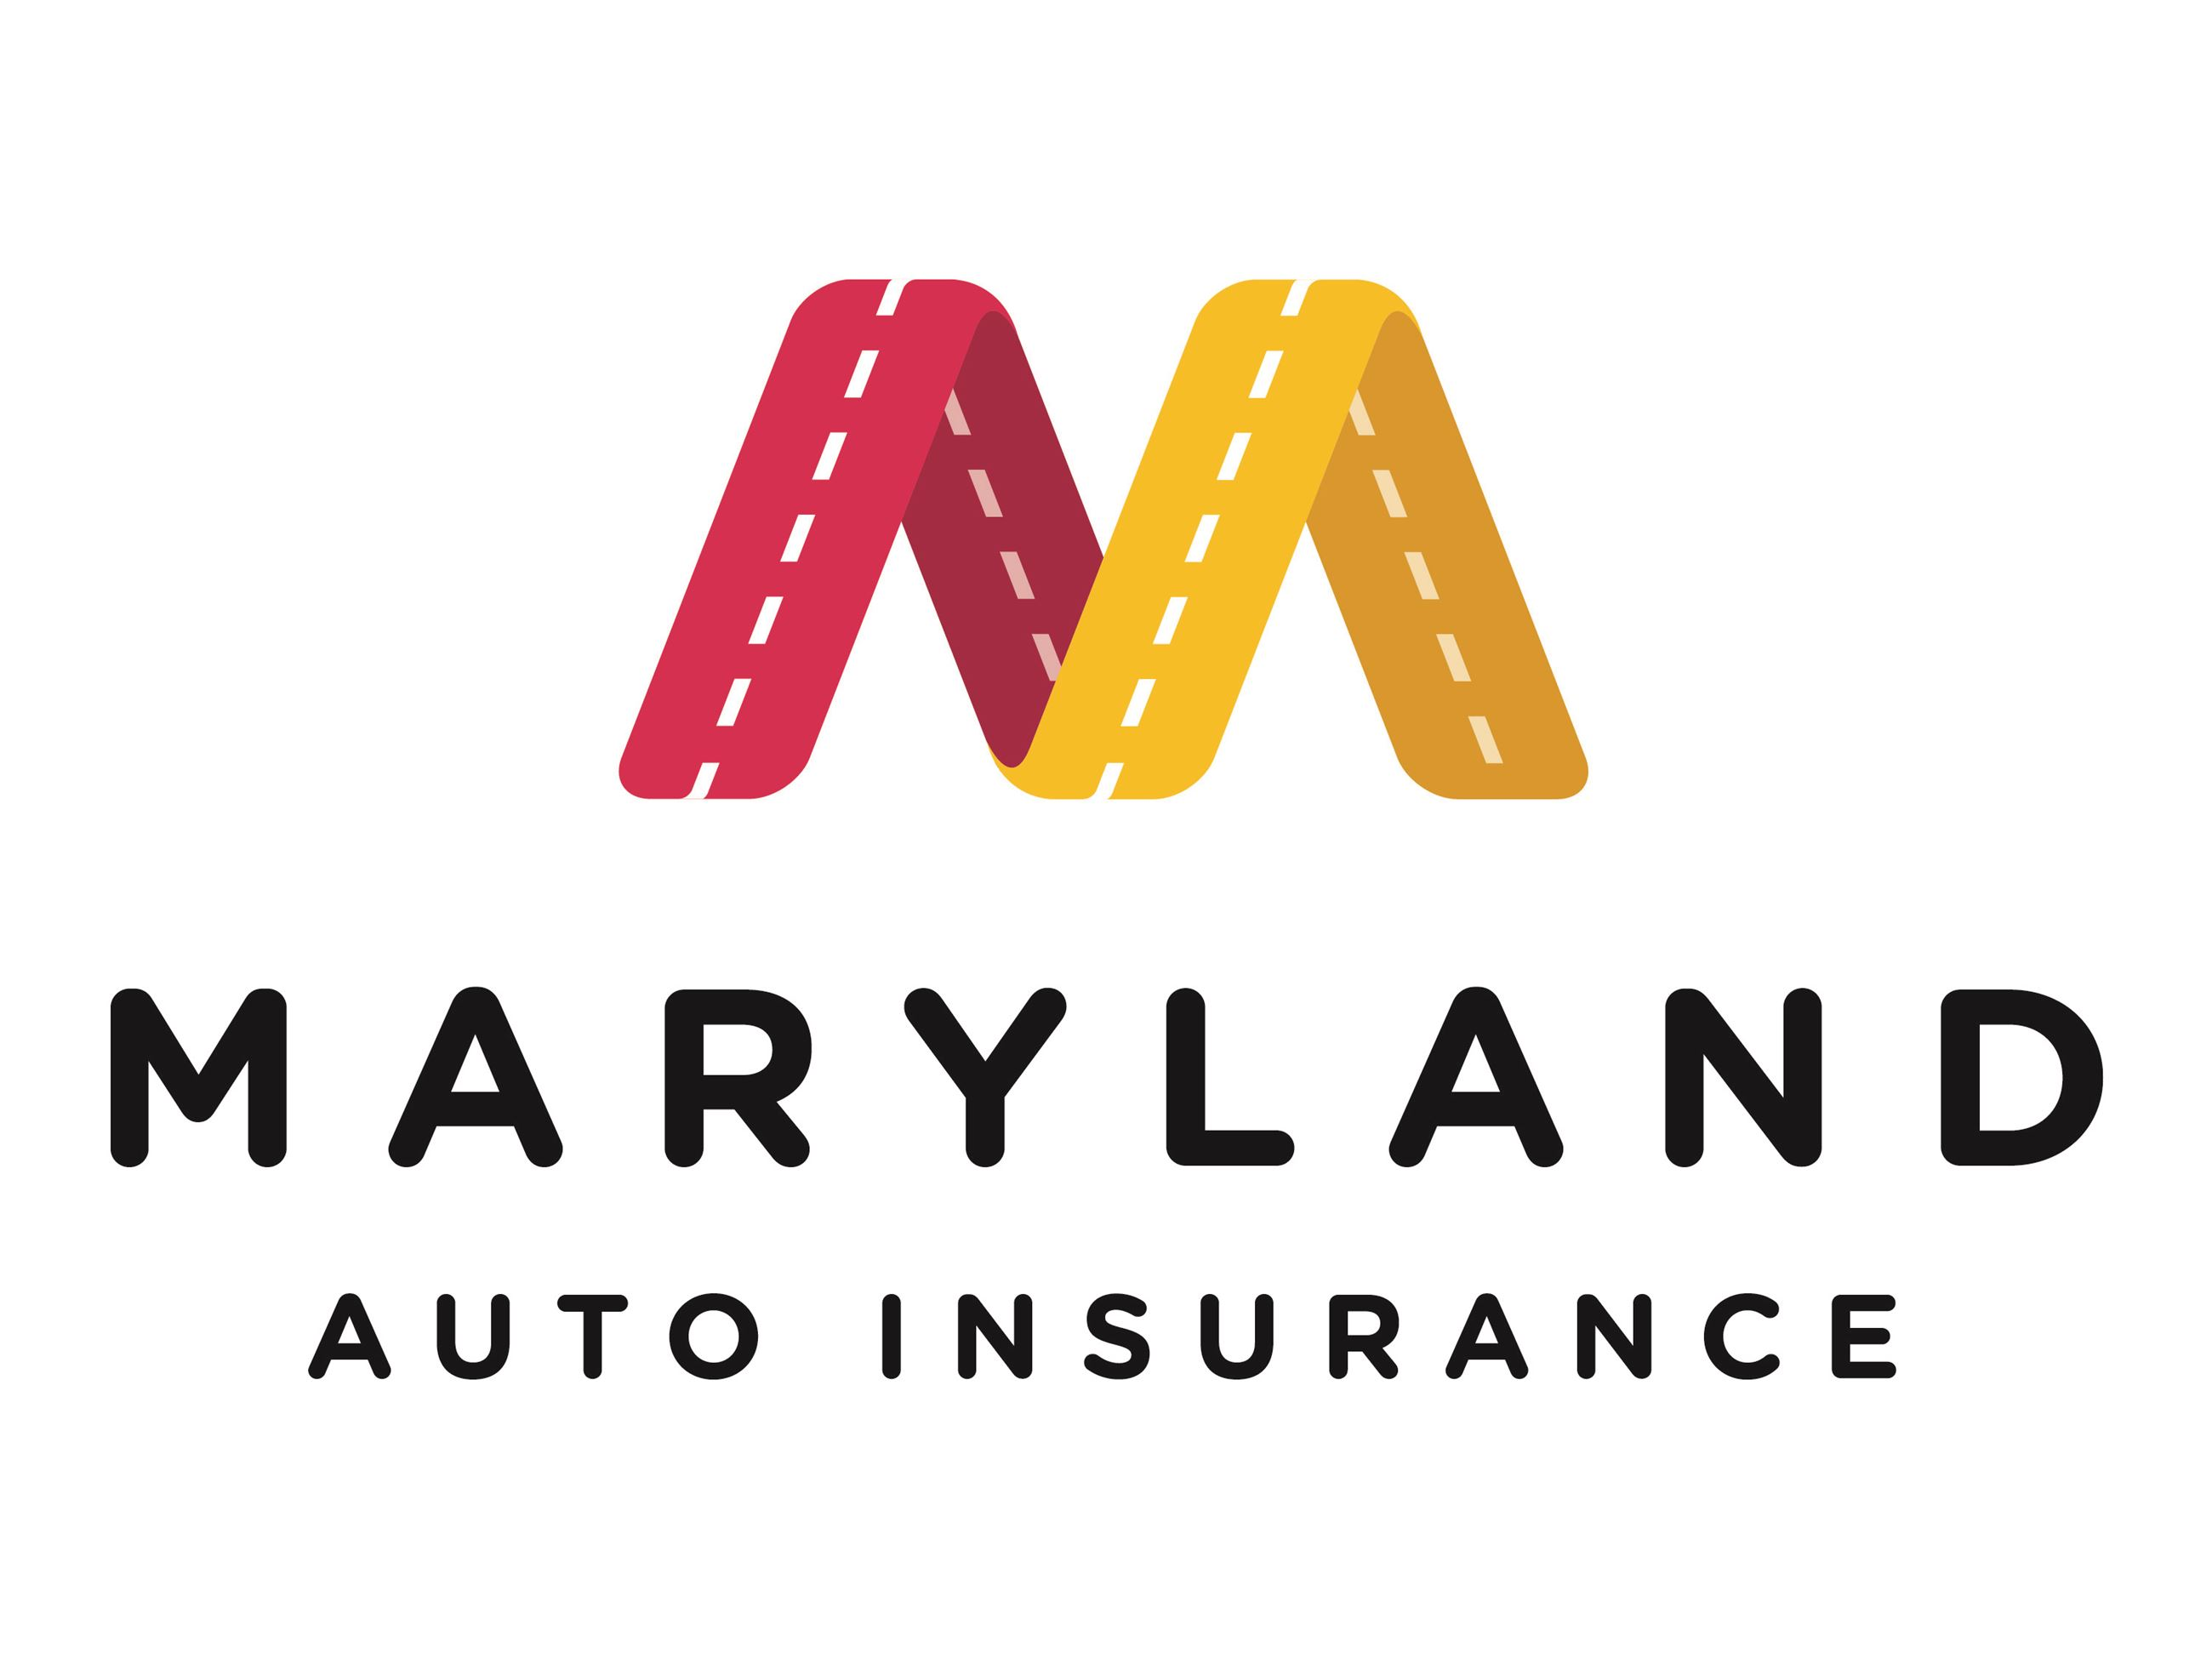 Maryland Auto Insurance logo